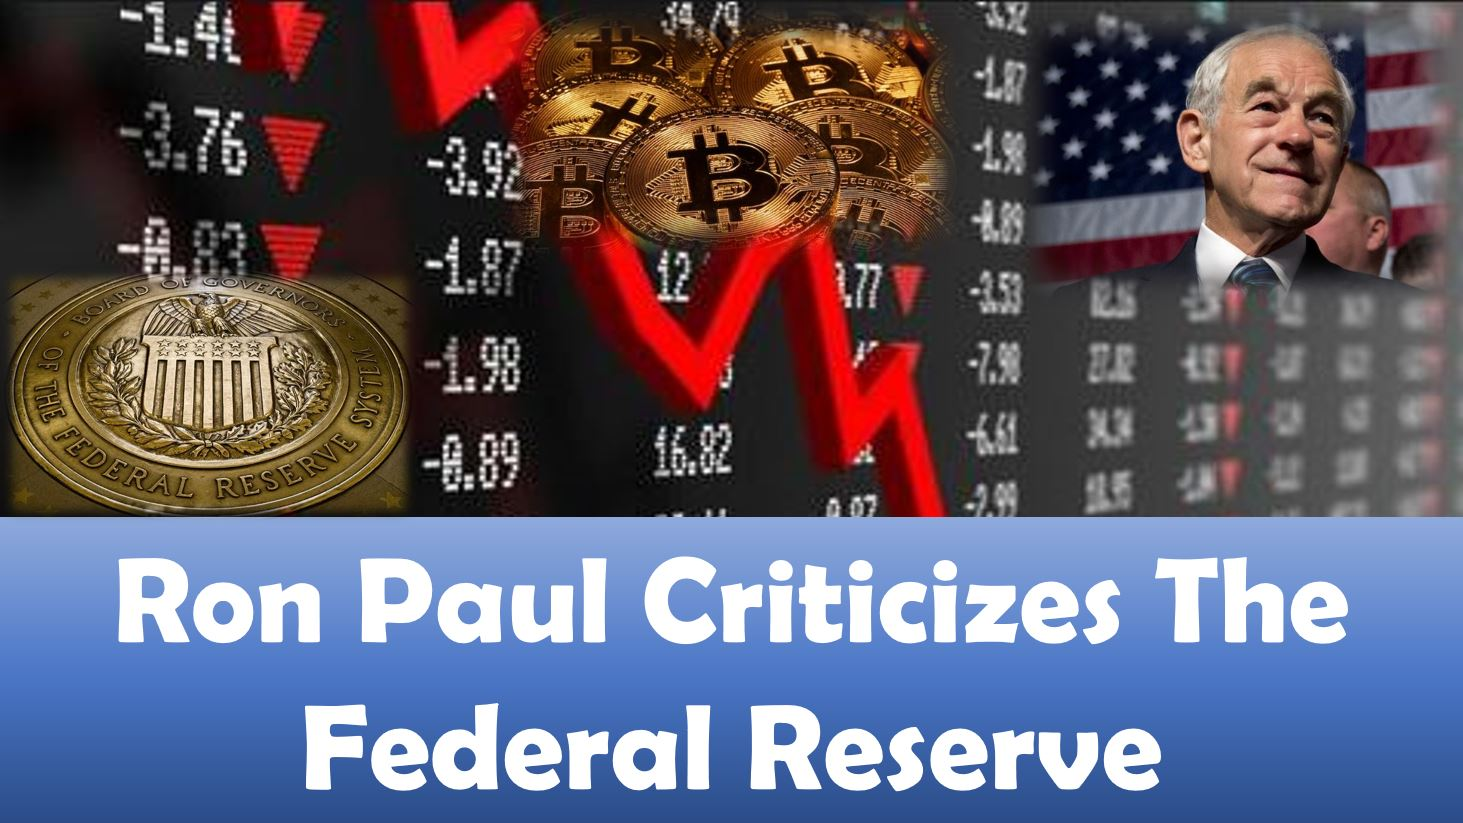 Ron Paul criticizes the Federal Reserve